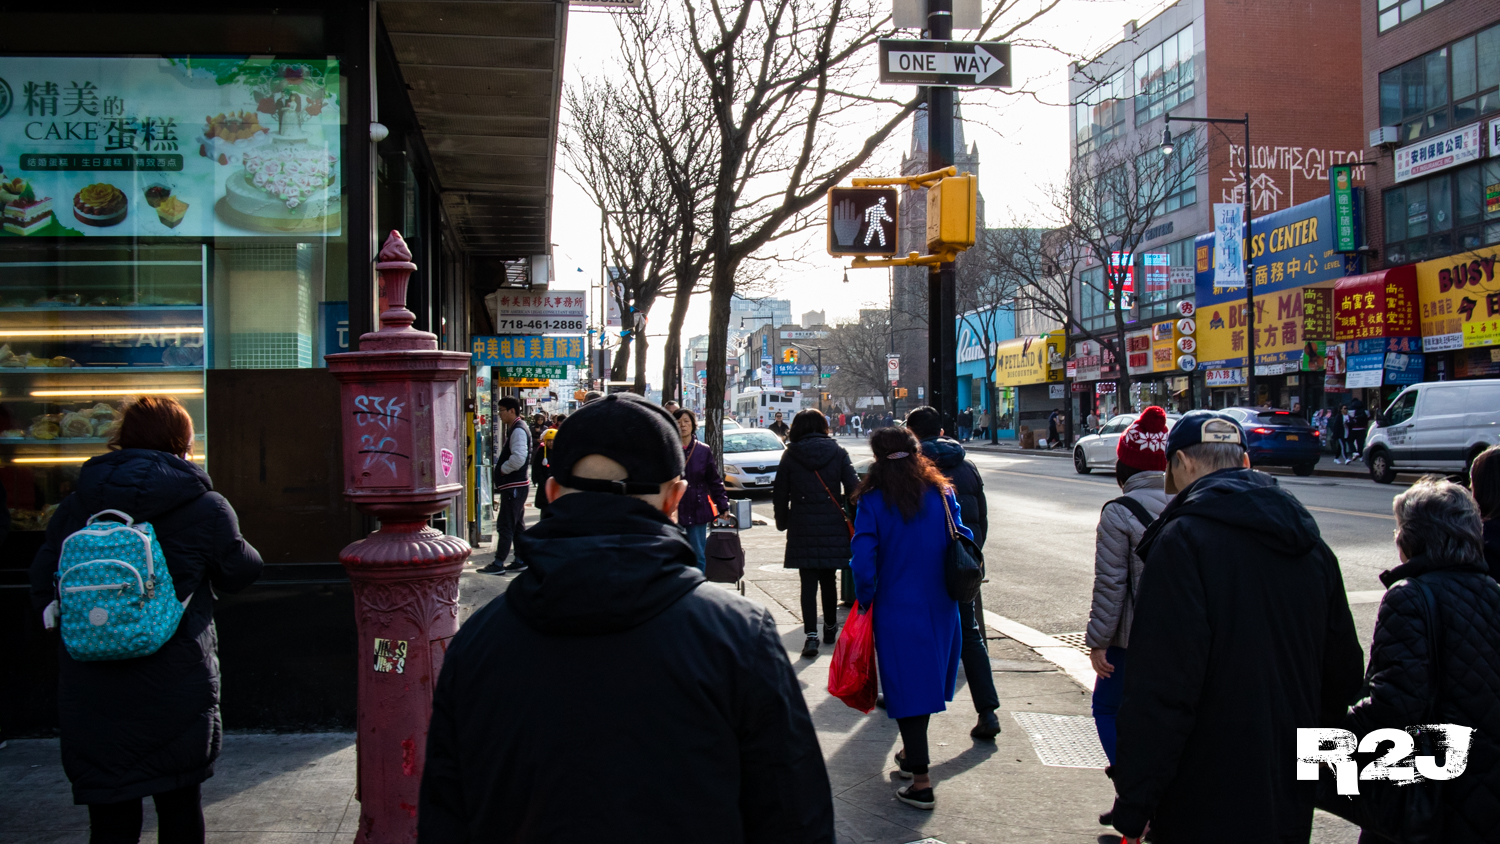 Union Street and Northern Blvd, Flushing